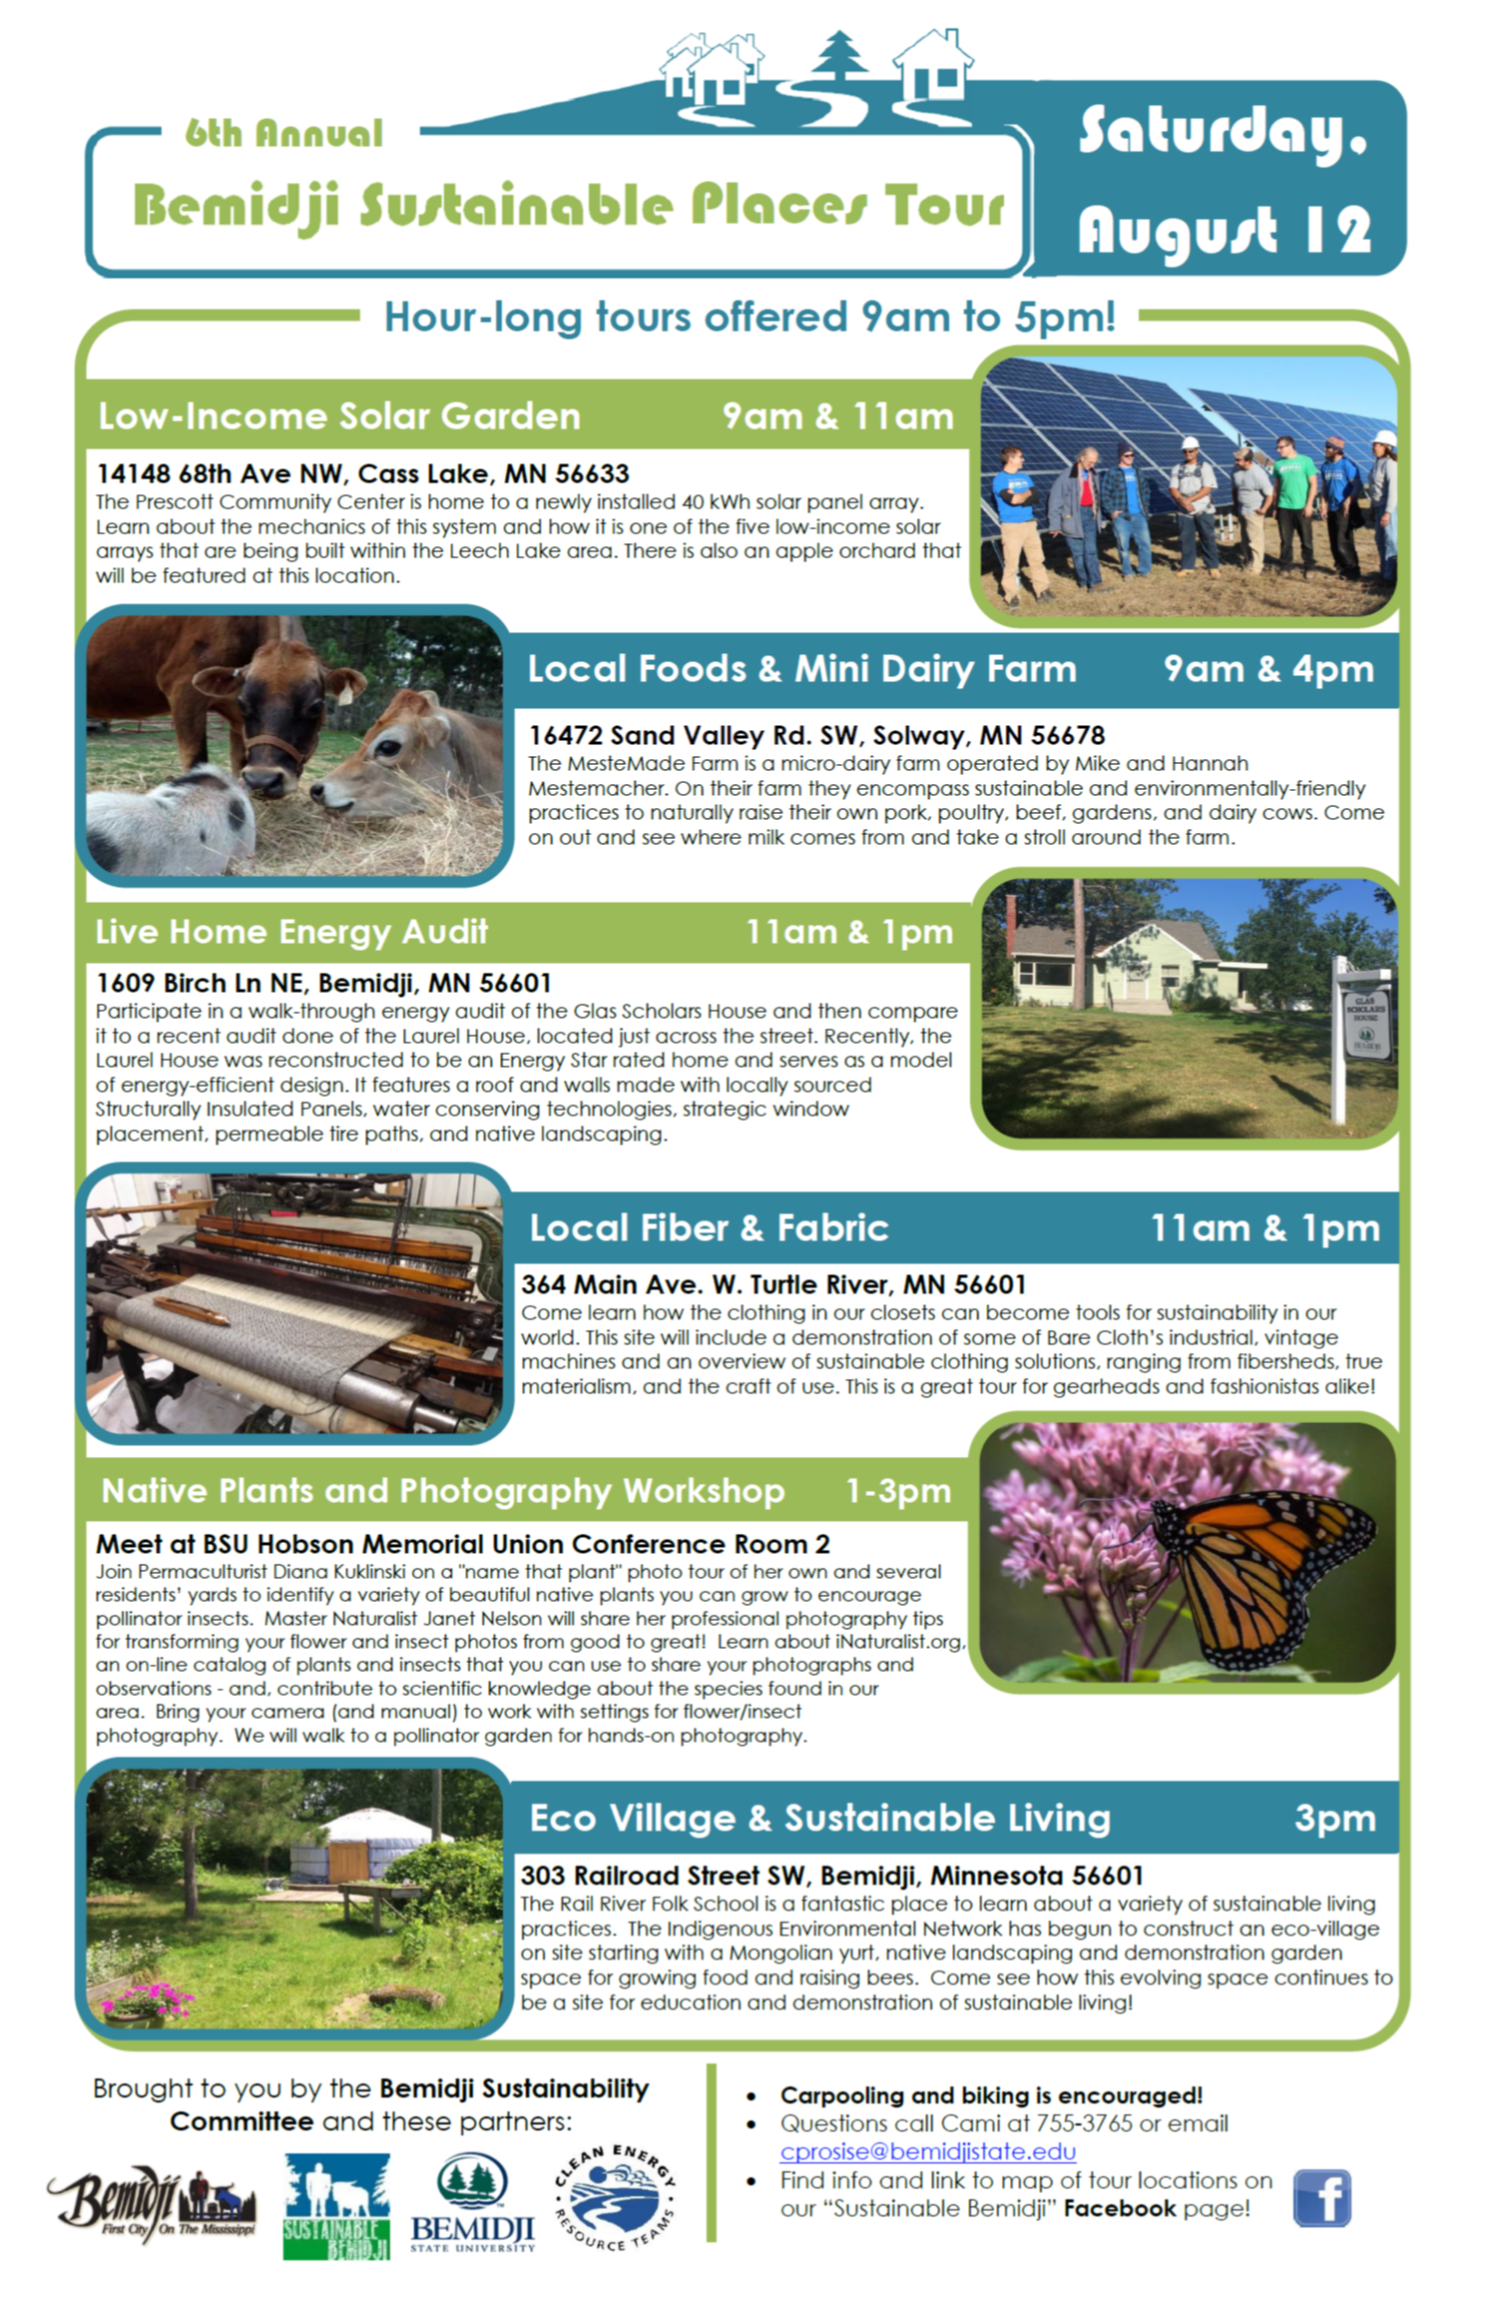 6th annual sustainable places tour saturday august 12th